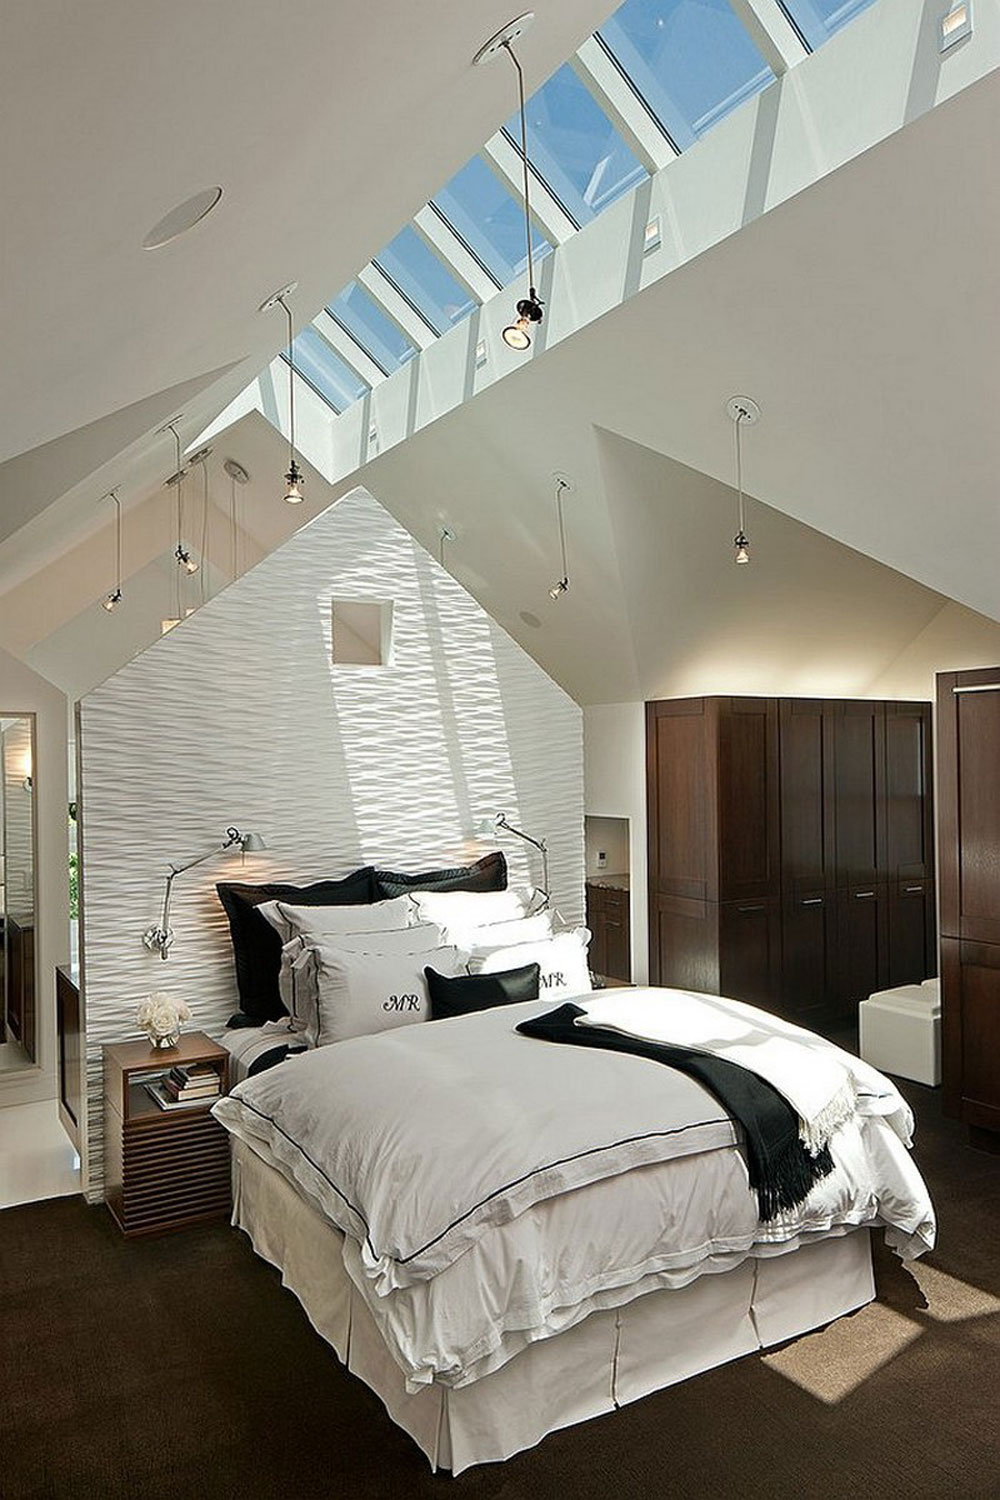 Skylight Home Design Ideas For A Better Life